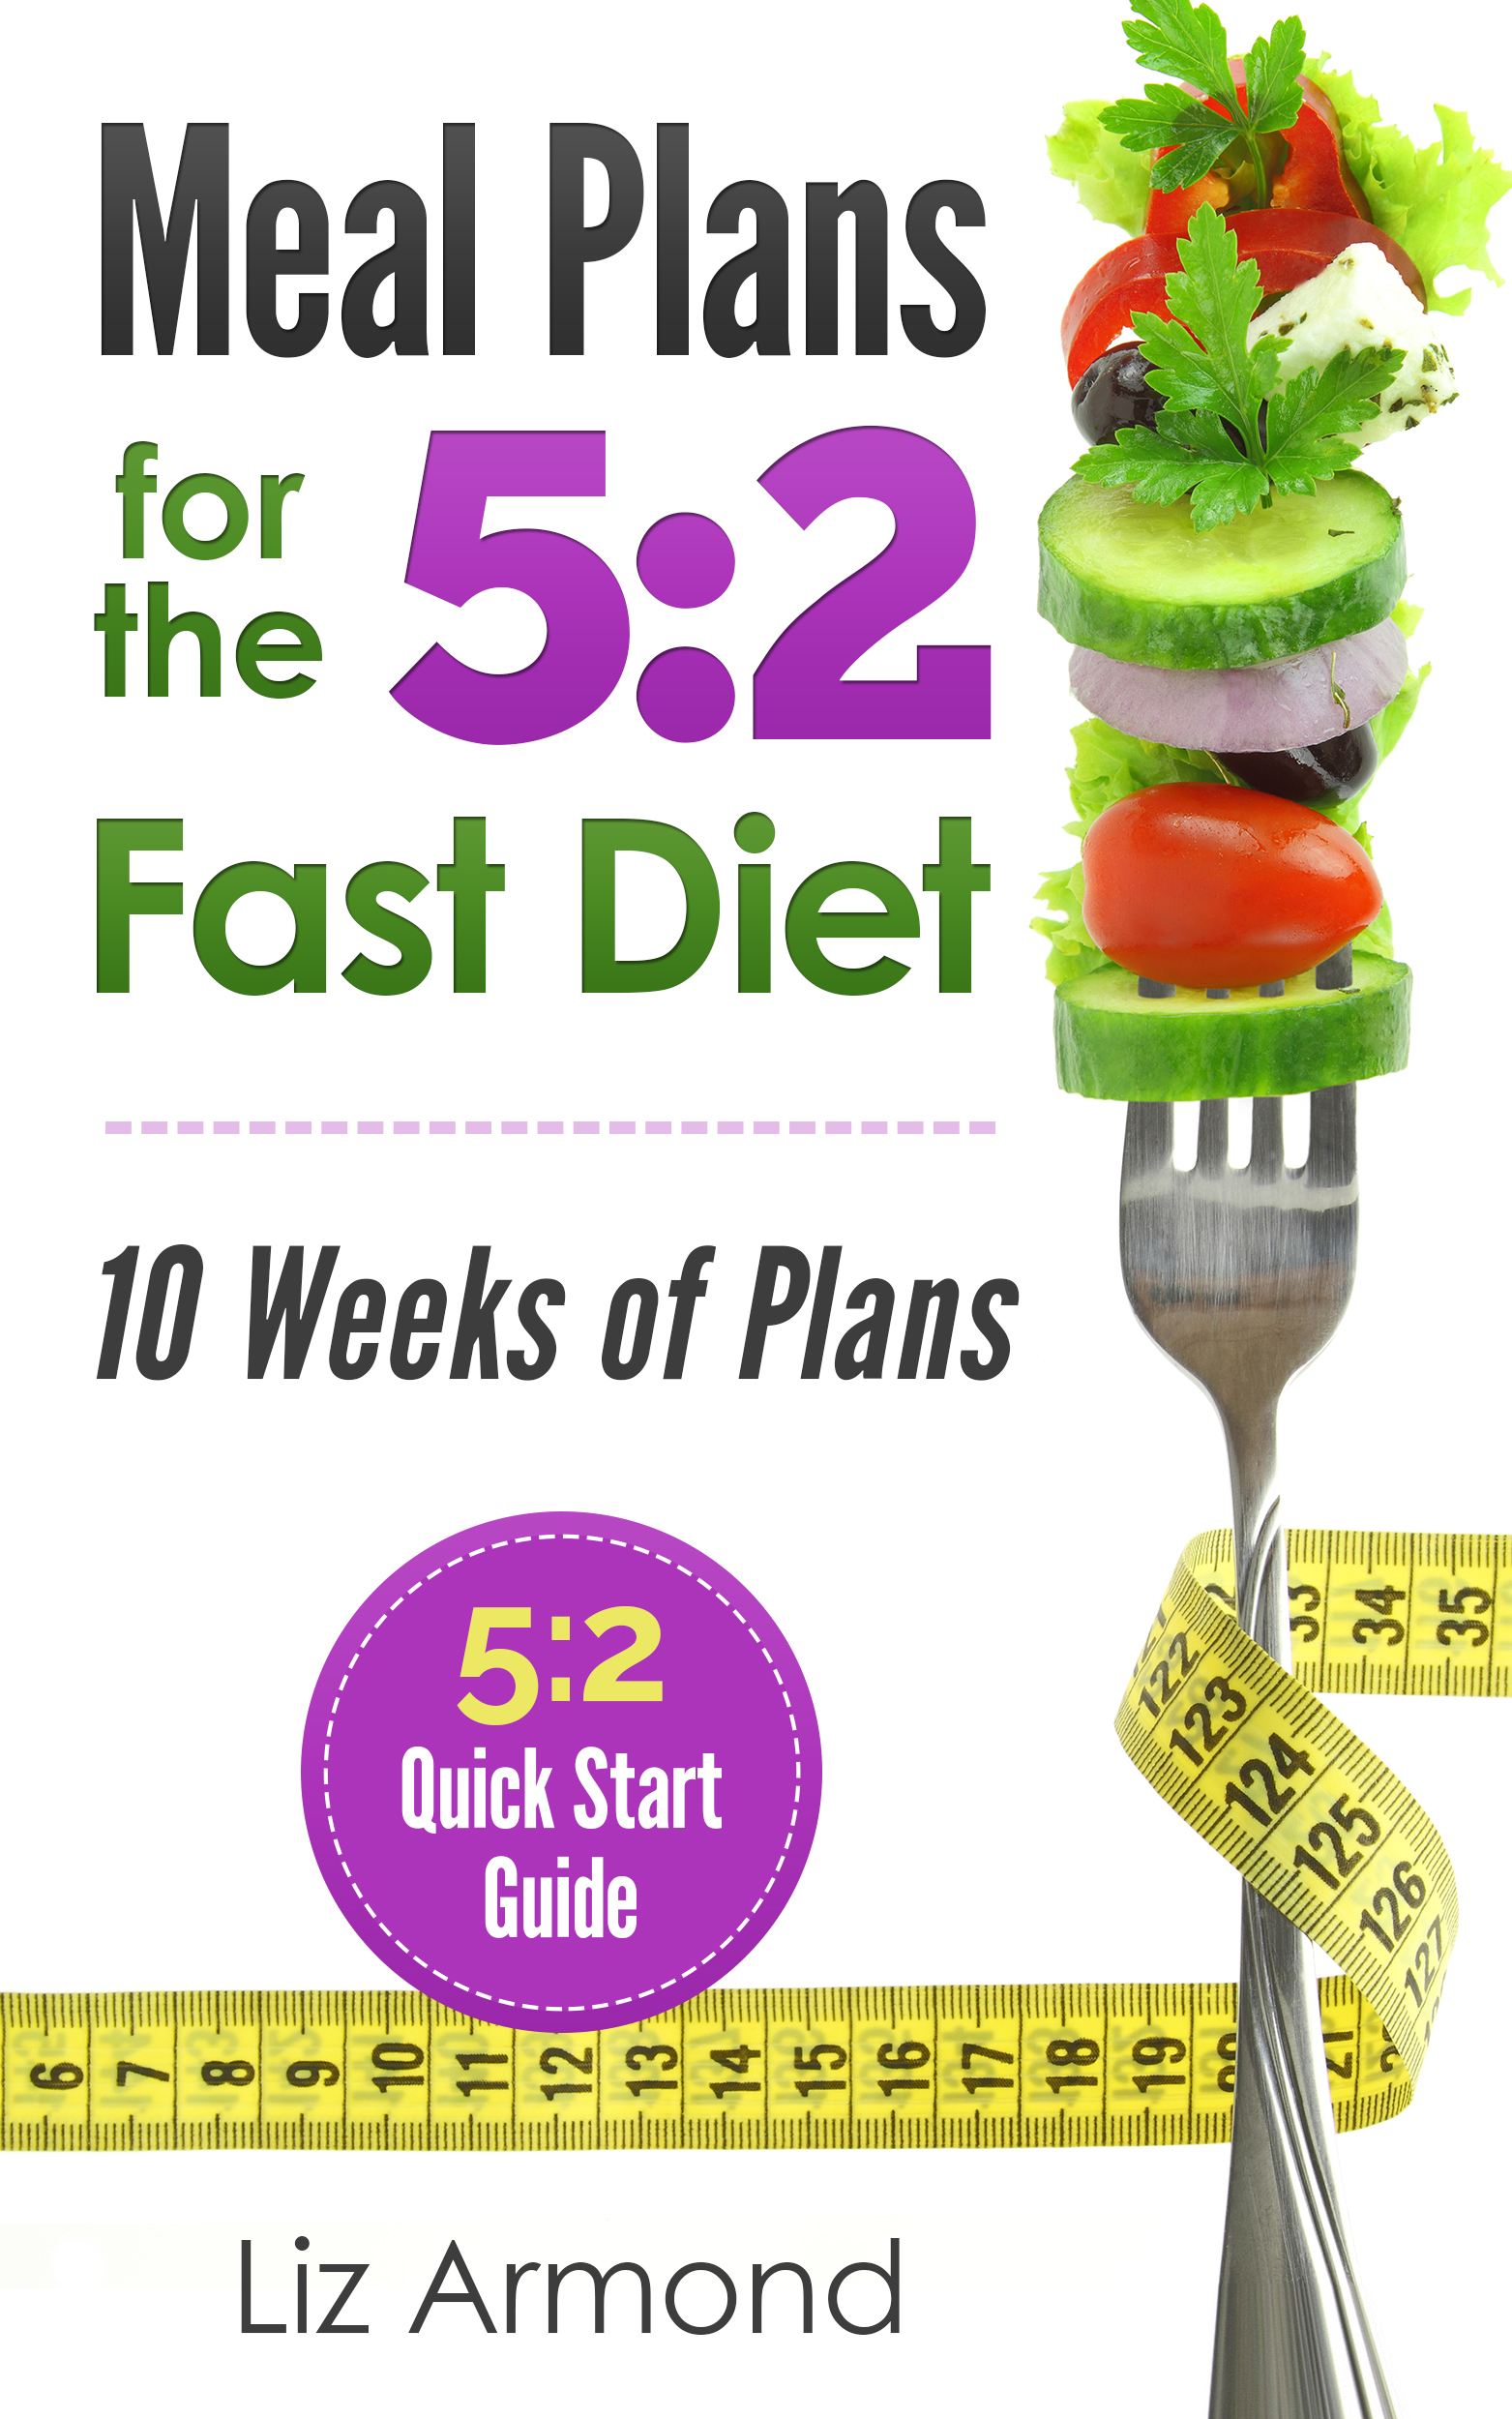 Meal Plans for the 5:2 Fast Diet, an Ebook by Liz Armond